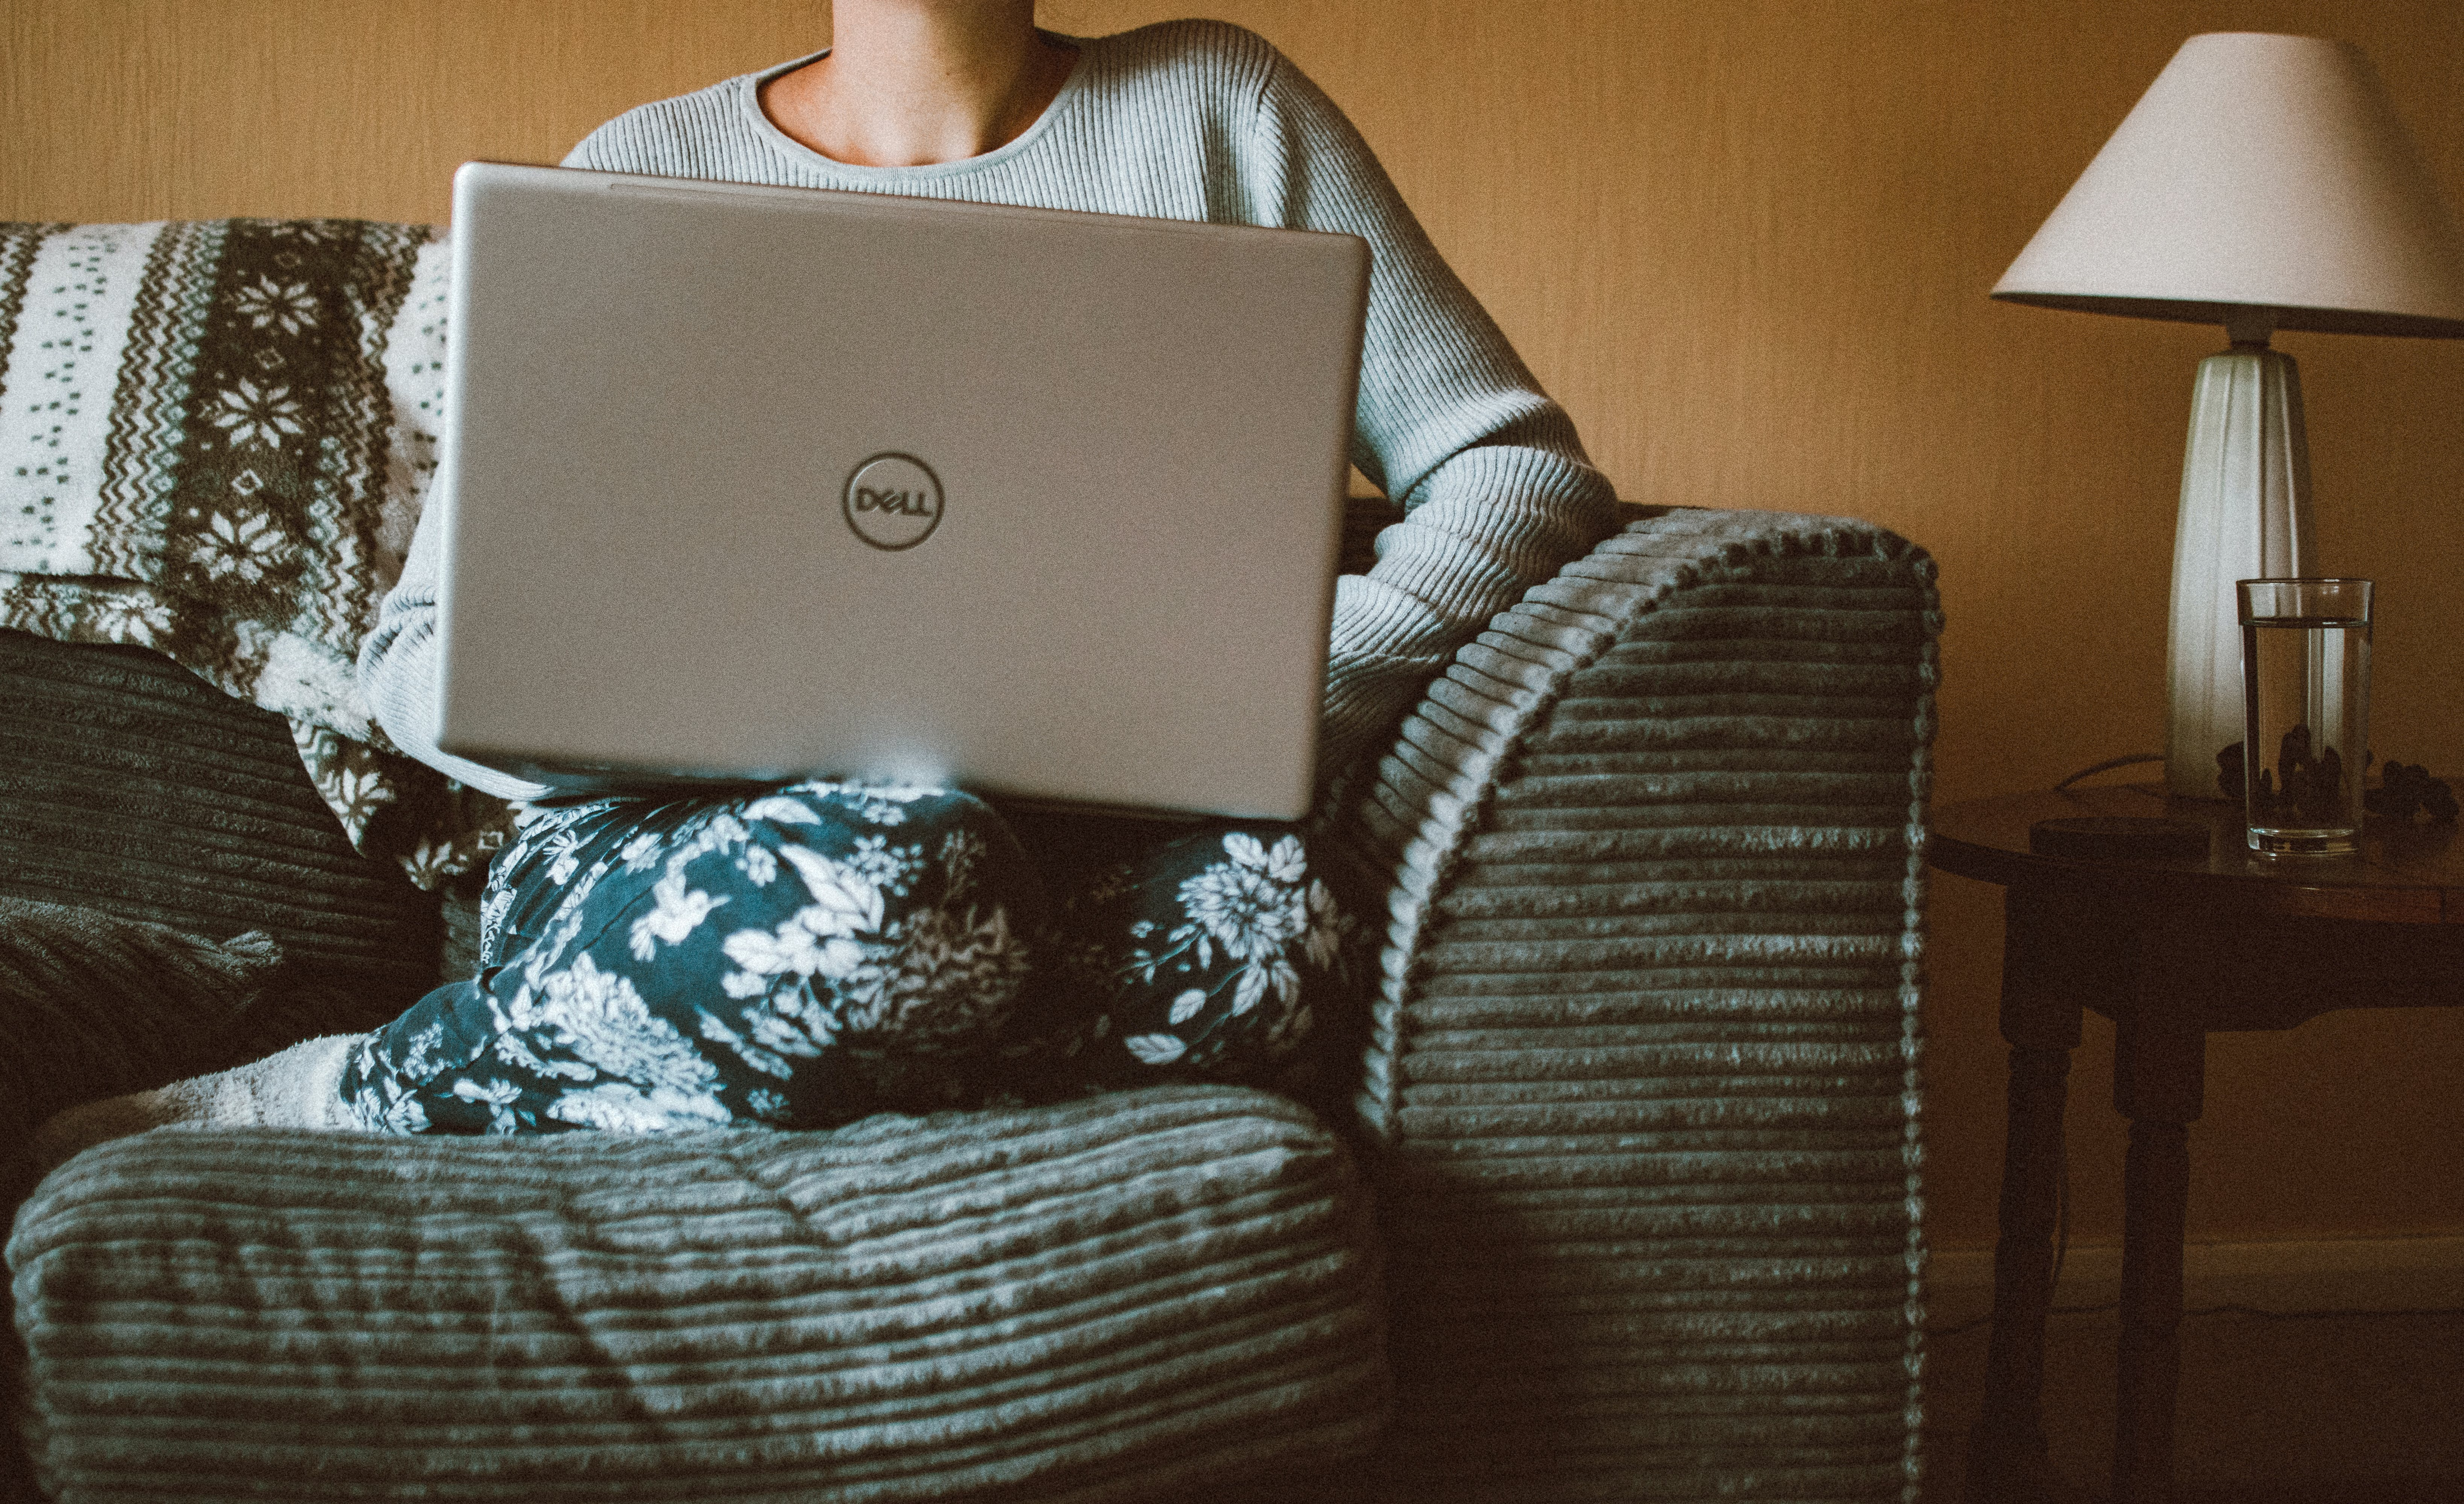 Person Using Dell Laptop While Sitting On Sofa Inside Room